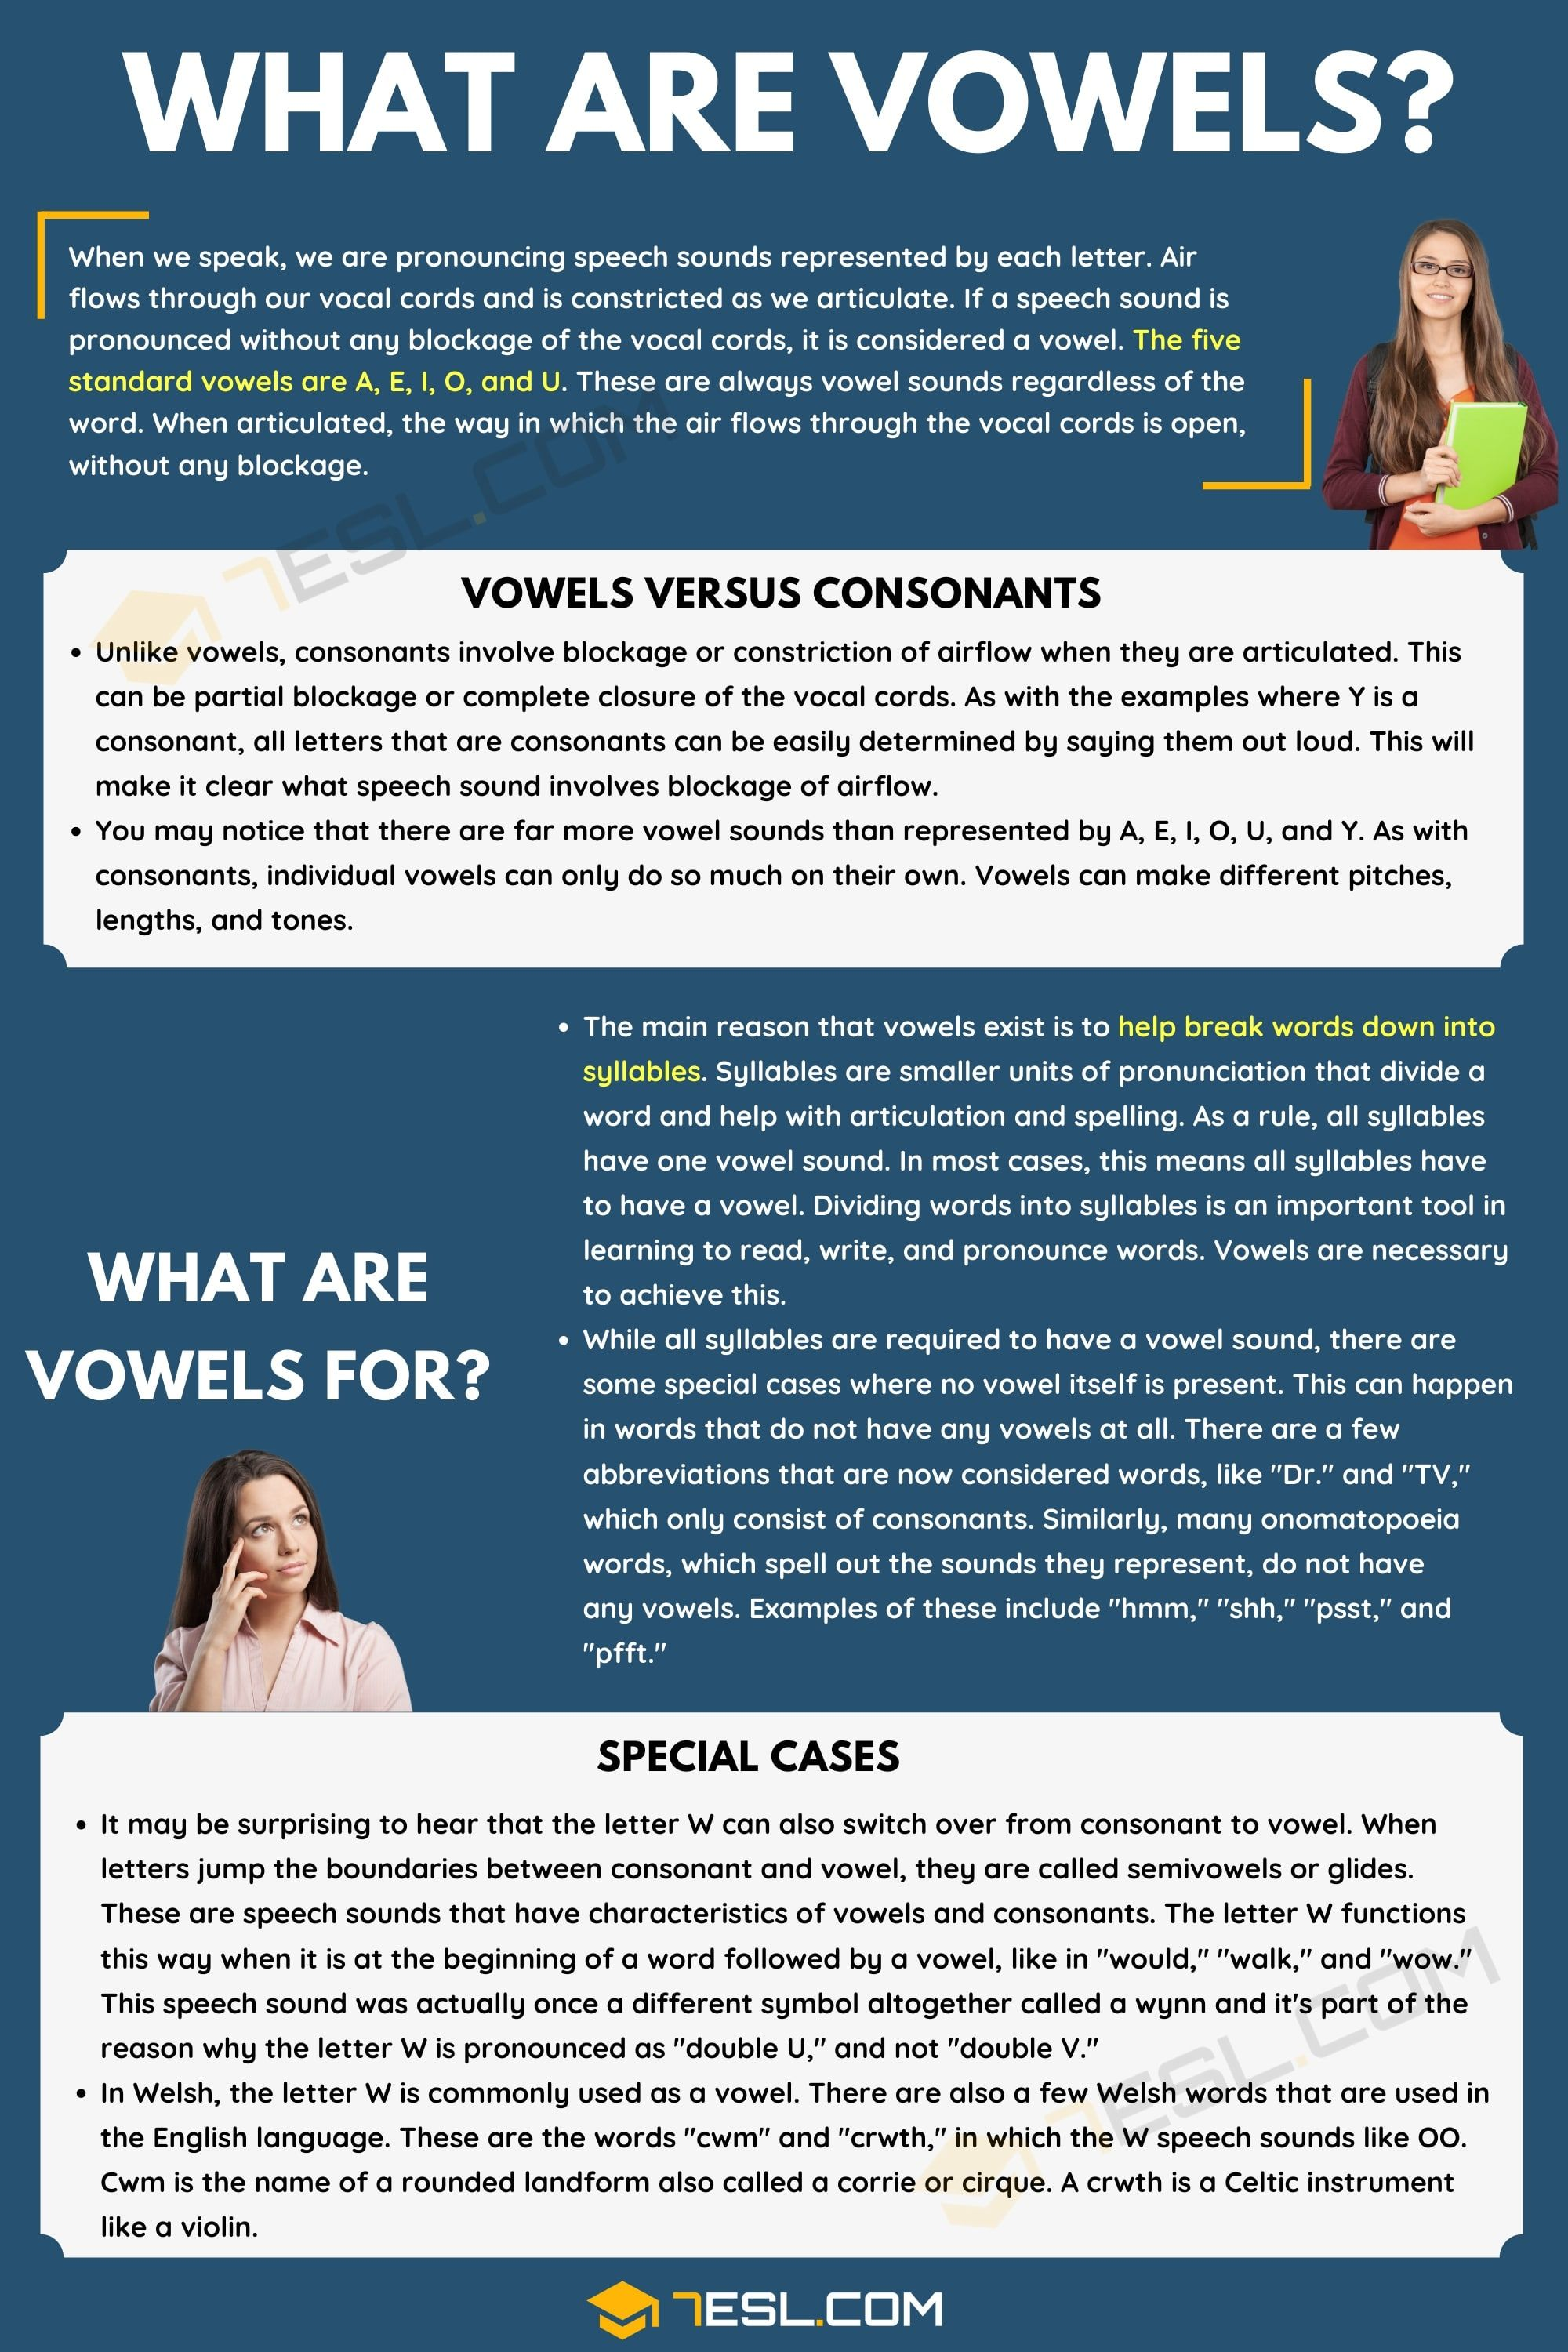 Vowels What They Are And Why We Have Them